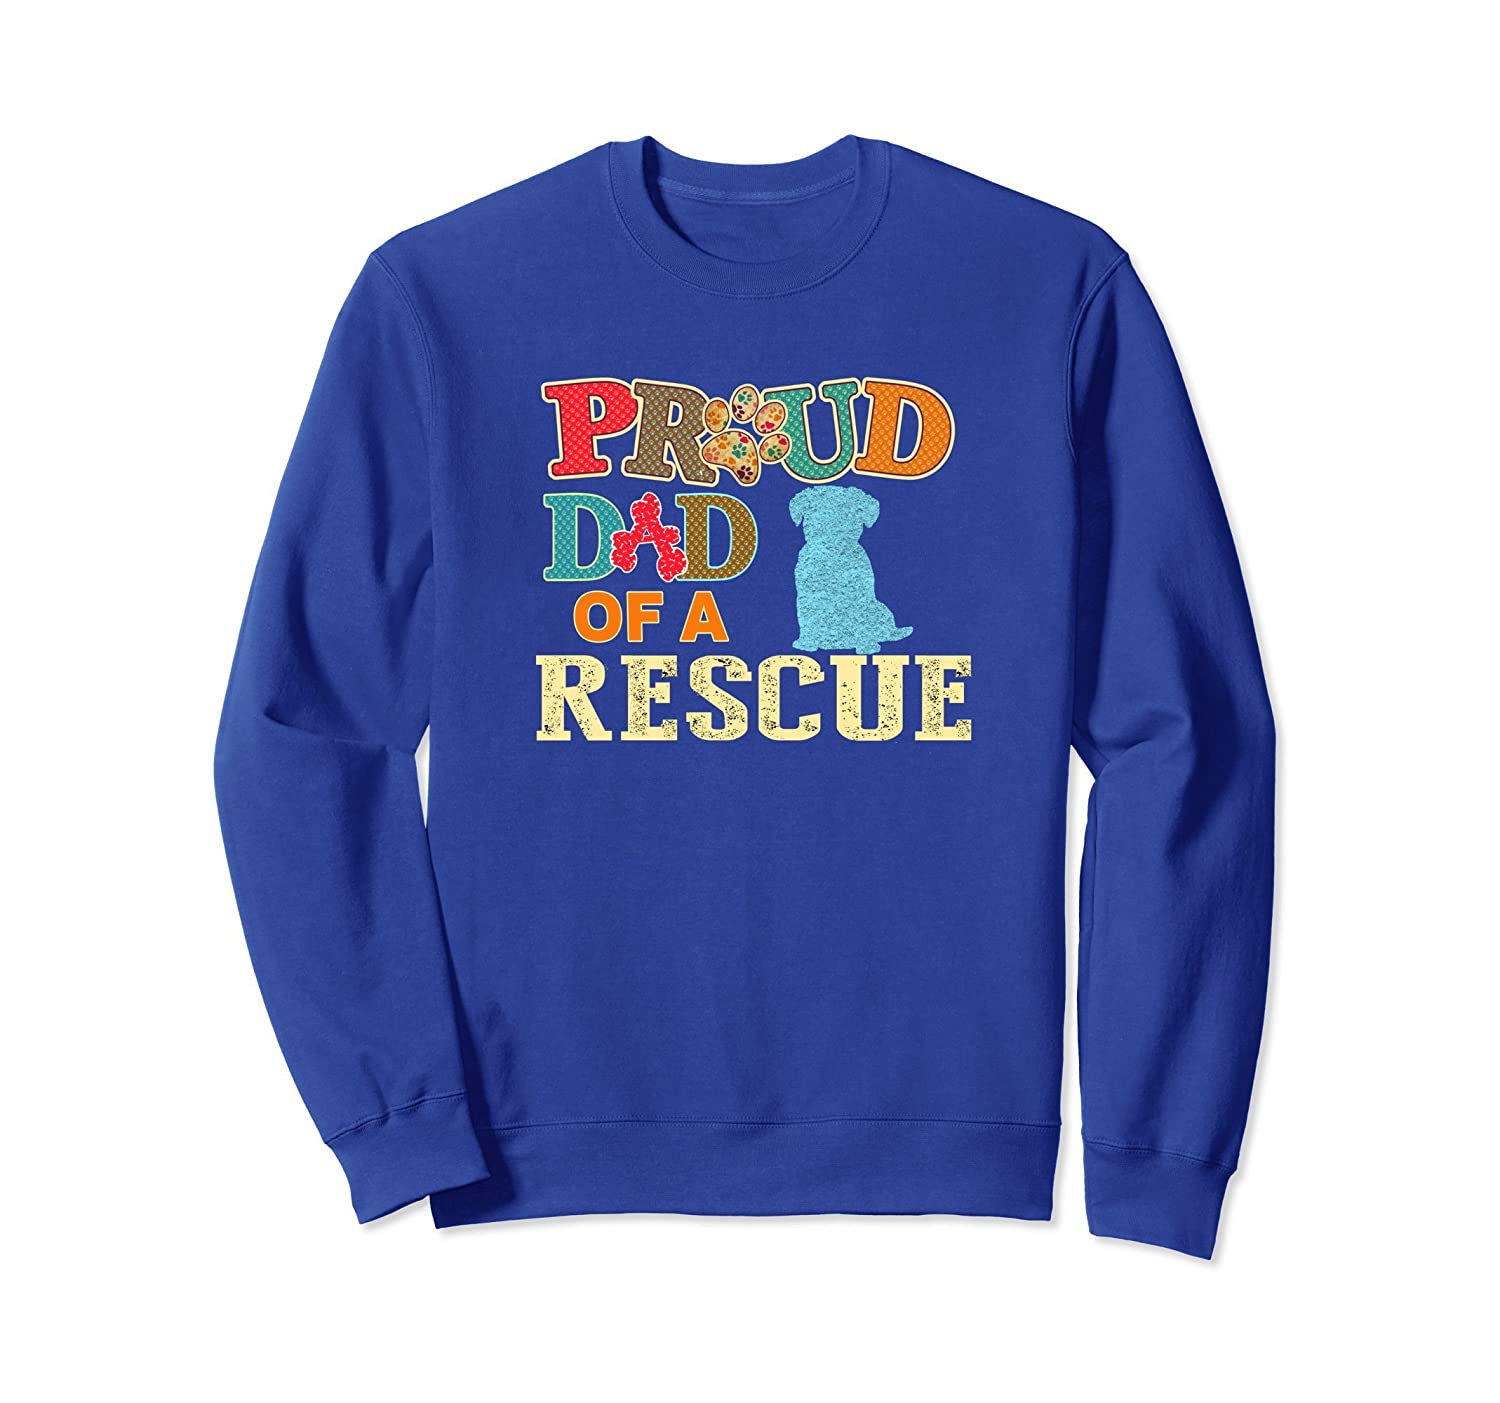 Rescue Dog Sweatshirt Proud Rescue Dog Dad-AZP